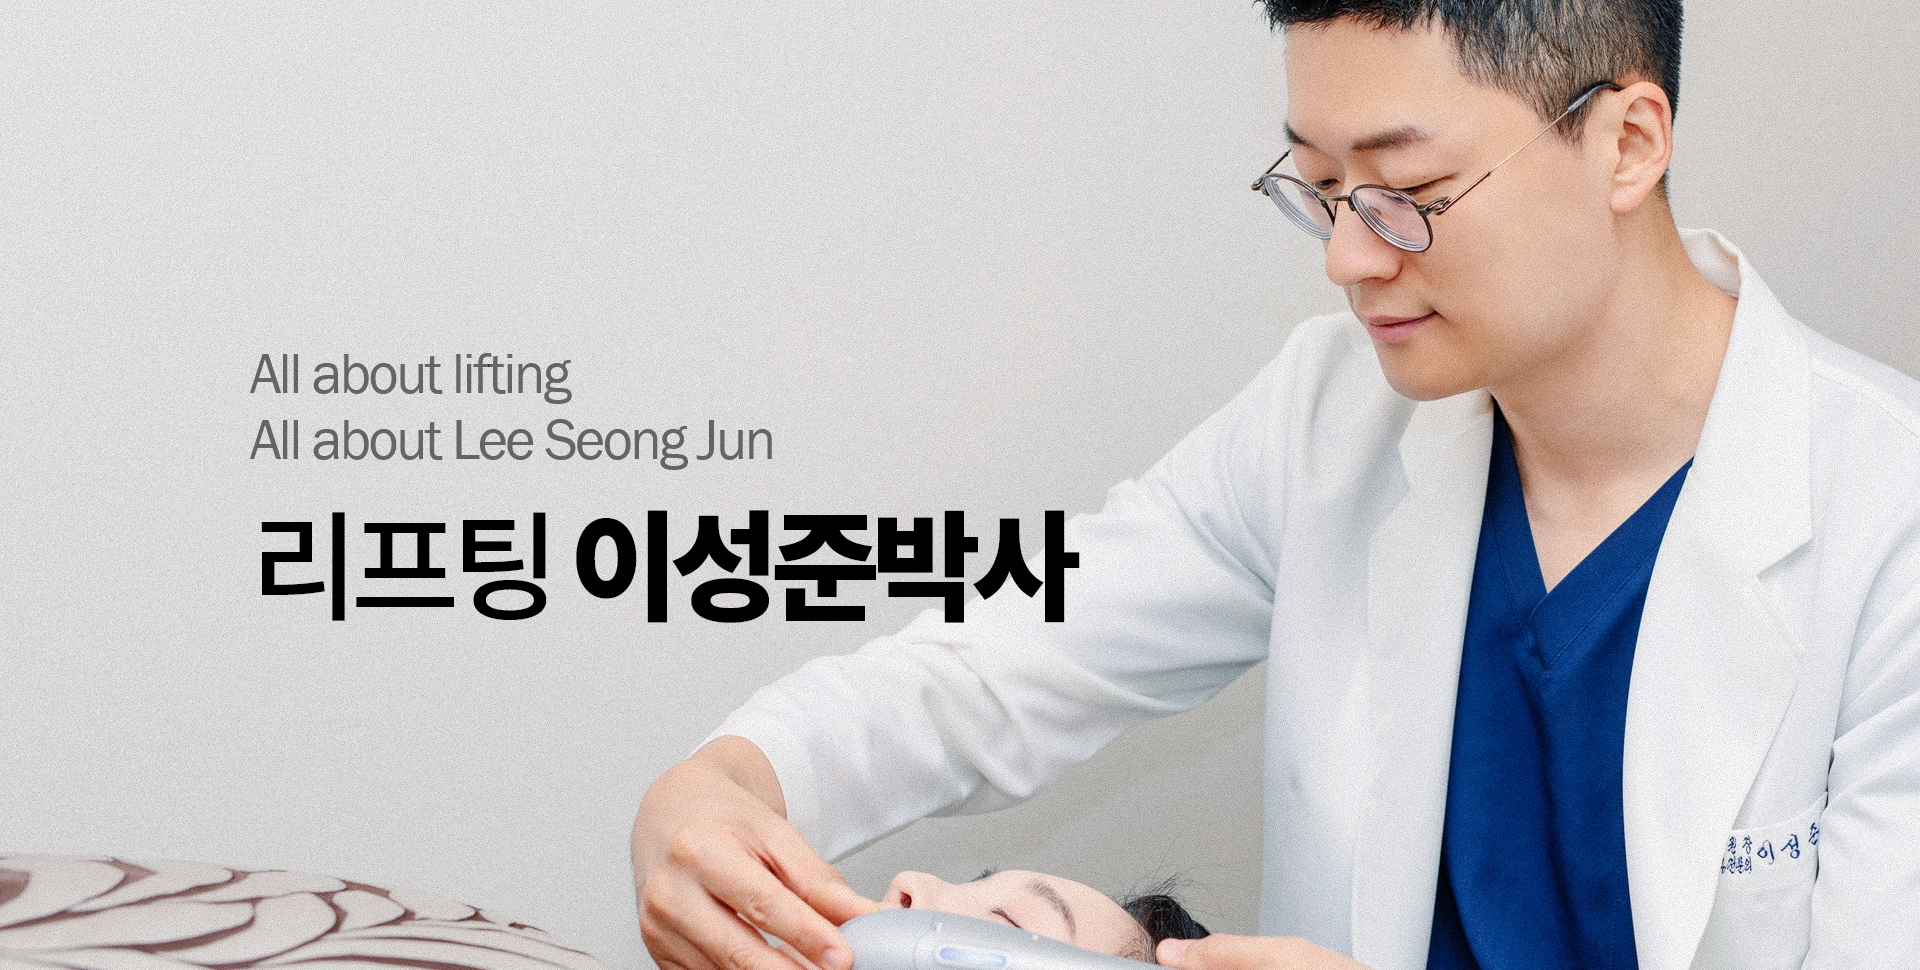 All about lifting / All about Lee Seong Jun / 리프팅 이성준박사